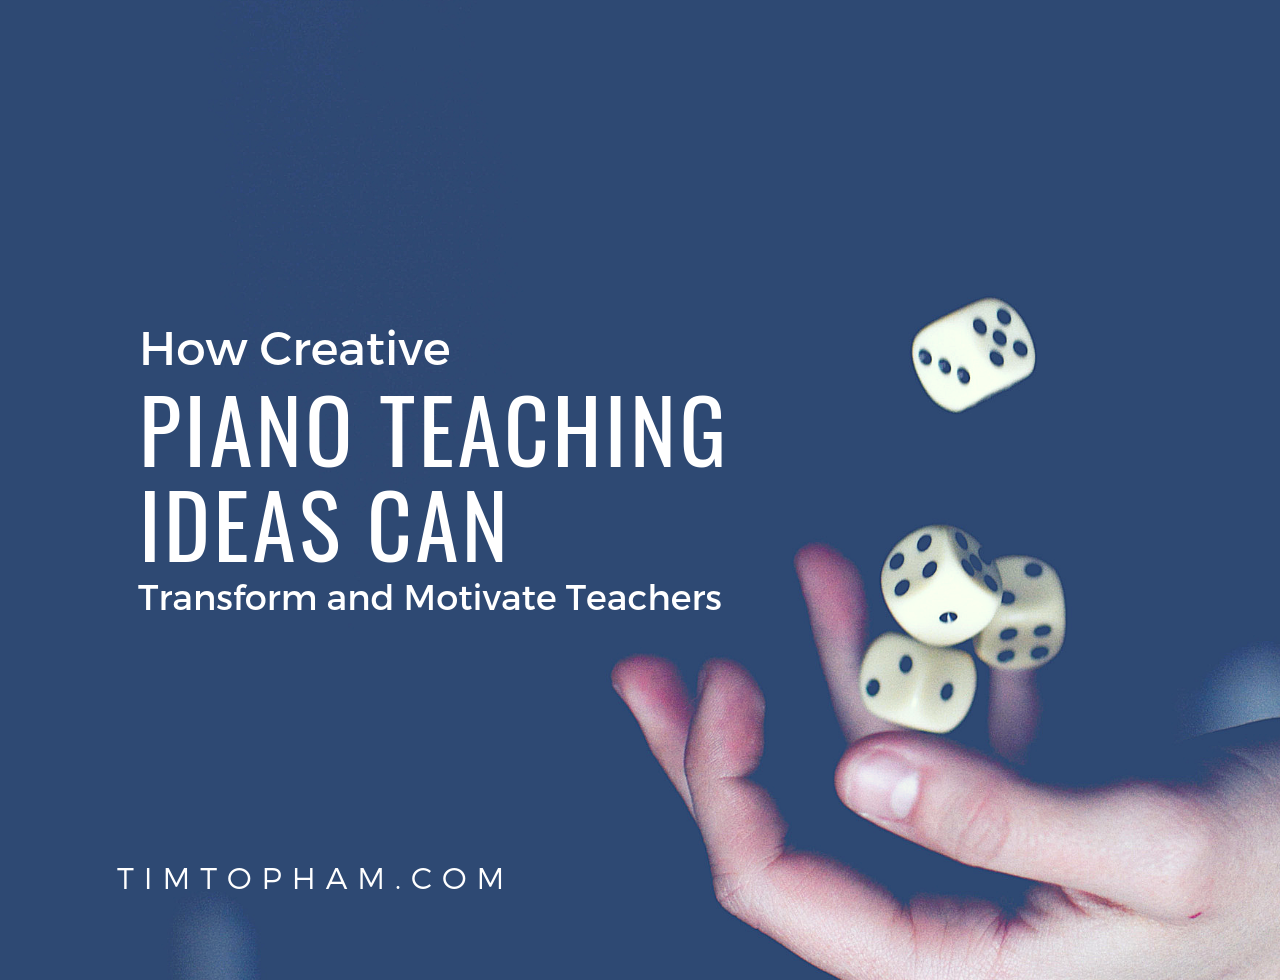 How Creative Piano Teaching Ideas Can Transform and Motivate